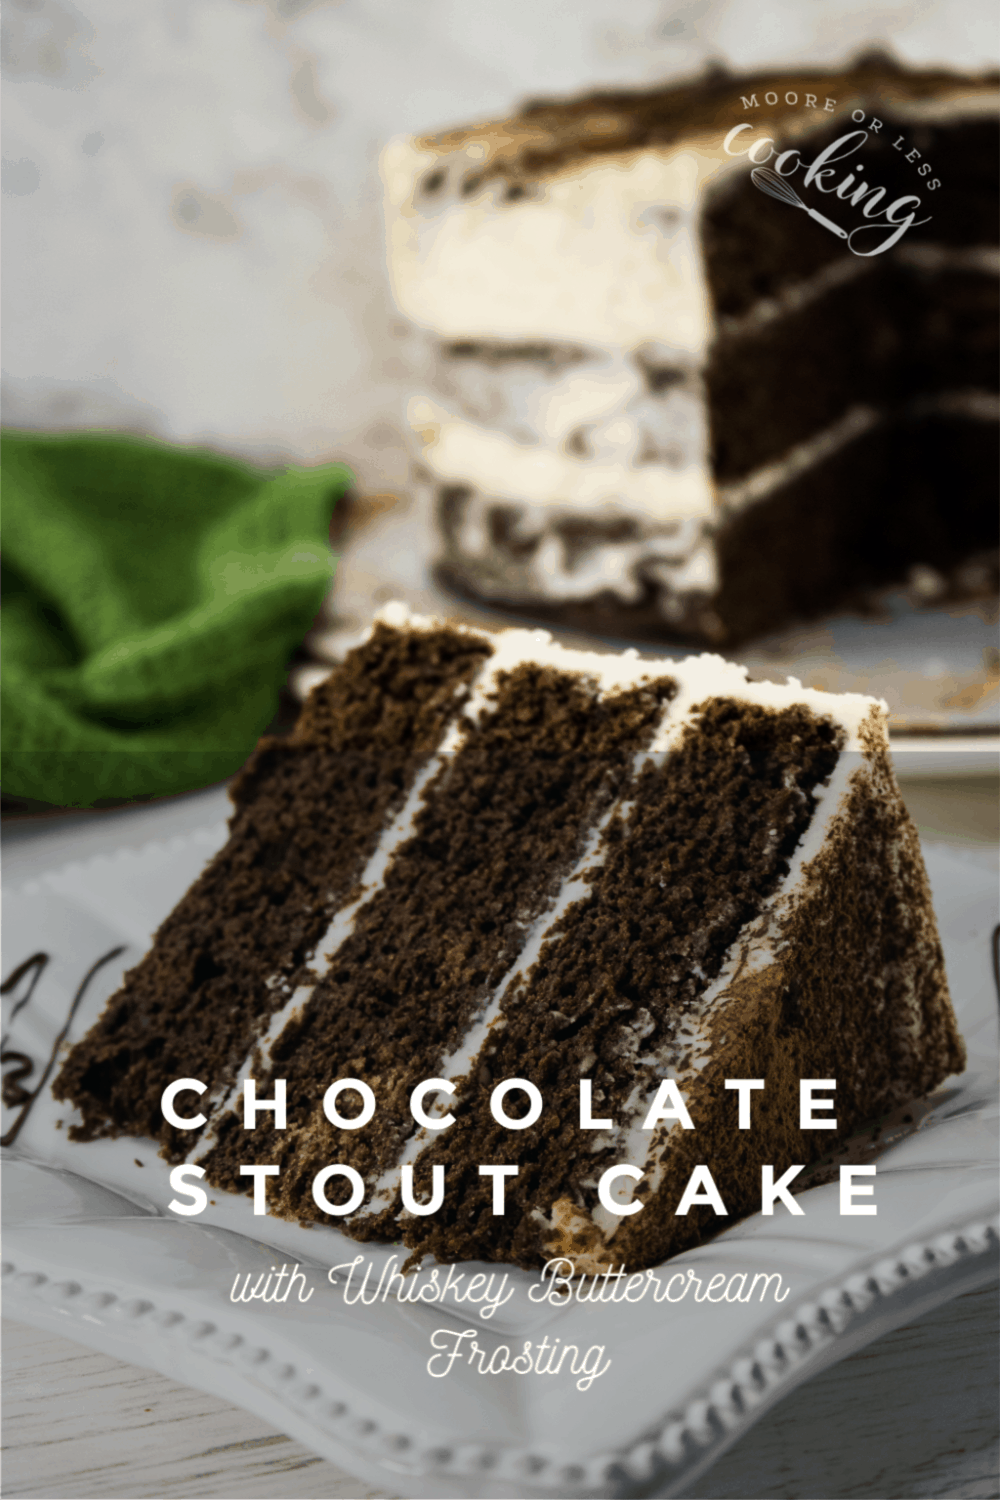 Chocolate Stout Cake with Whiskey Buttercream Frosting. An incredibly decadent dessert for St. Patrick's Day or any day. #chocolatecake #cake #dessert #mooreorlesscooking #chocolatestoutcake #pretty #delicious via @Mooreorlesscook